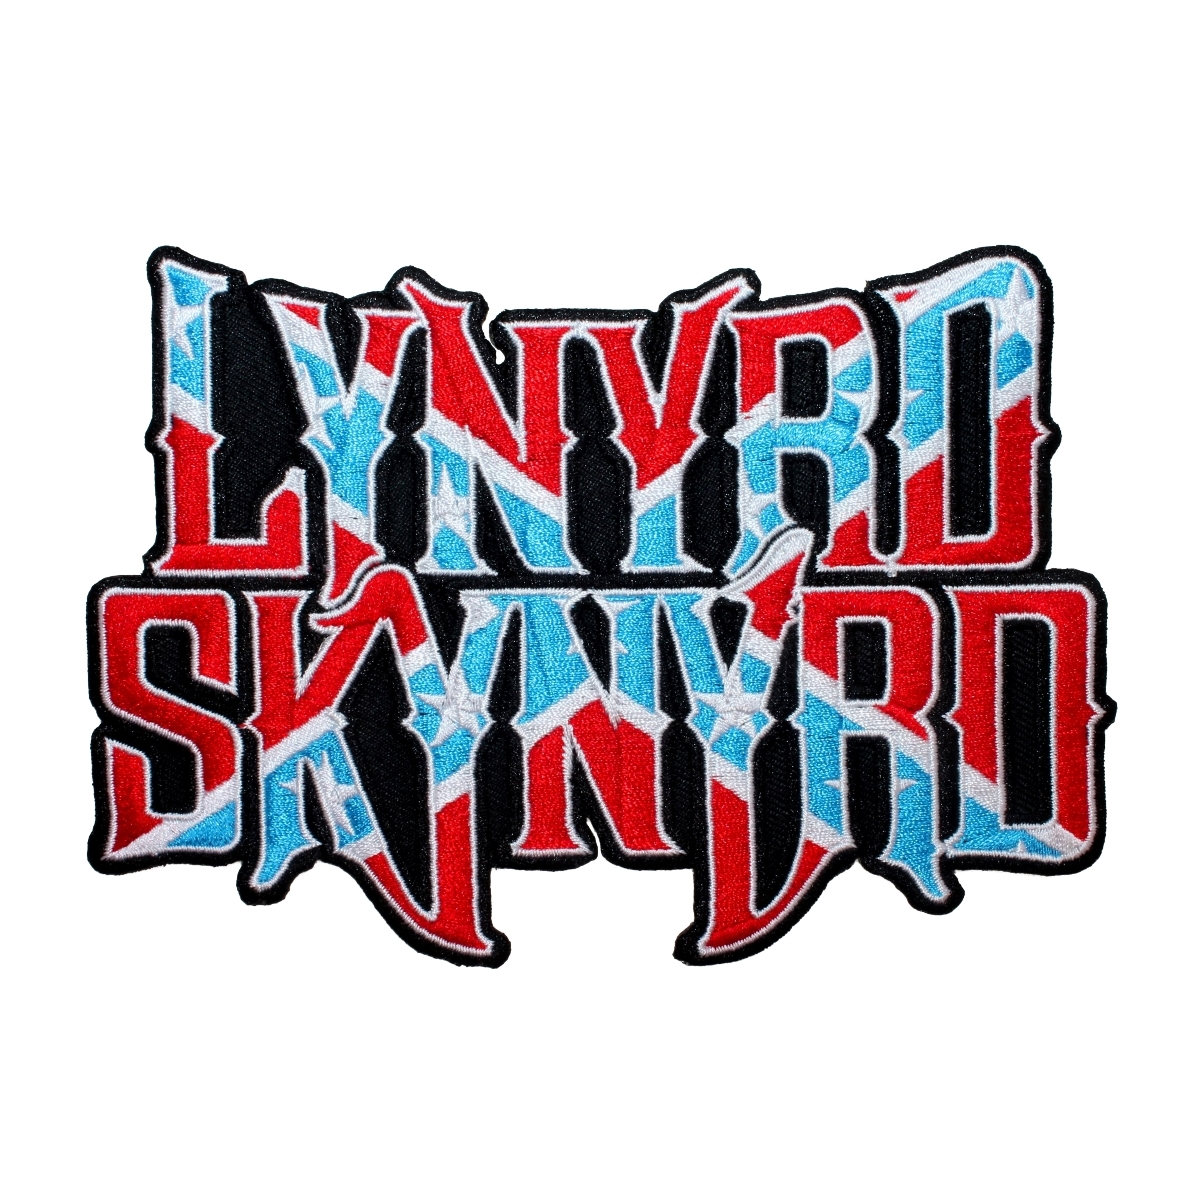 Lynyrd Skynyrd Larger Band Logo Patch Southern Rock Band Music Iron On  Applique.